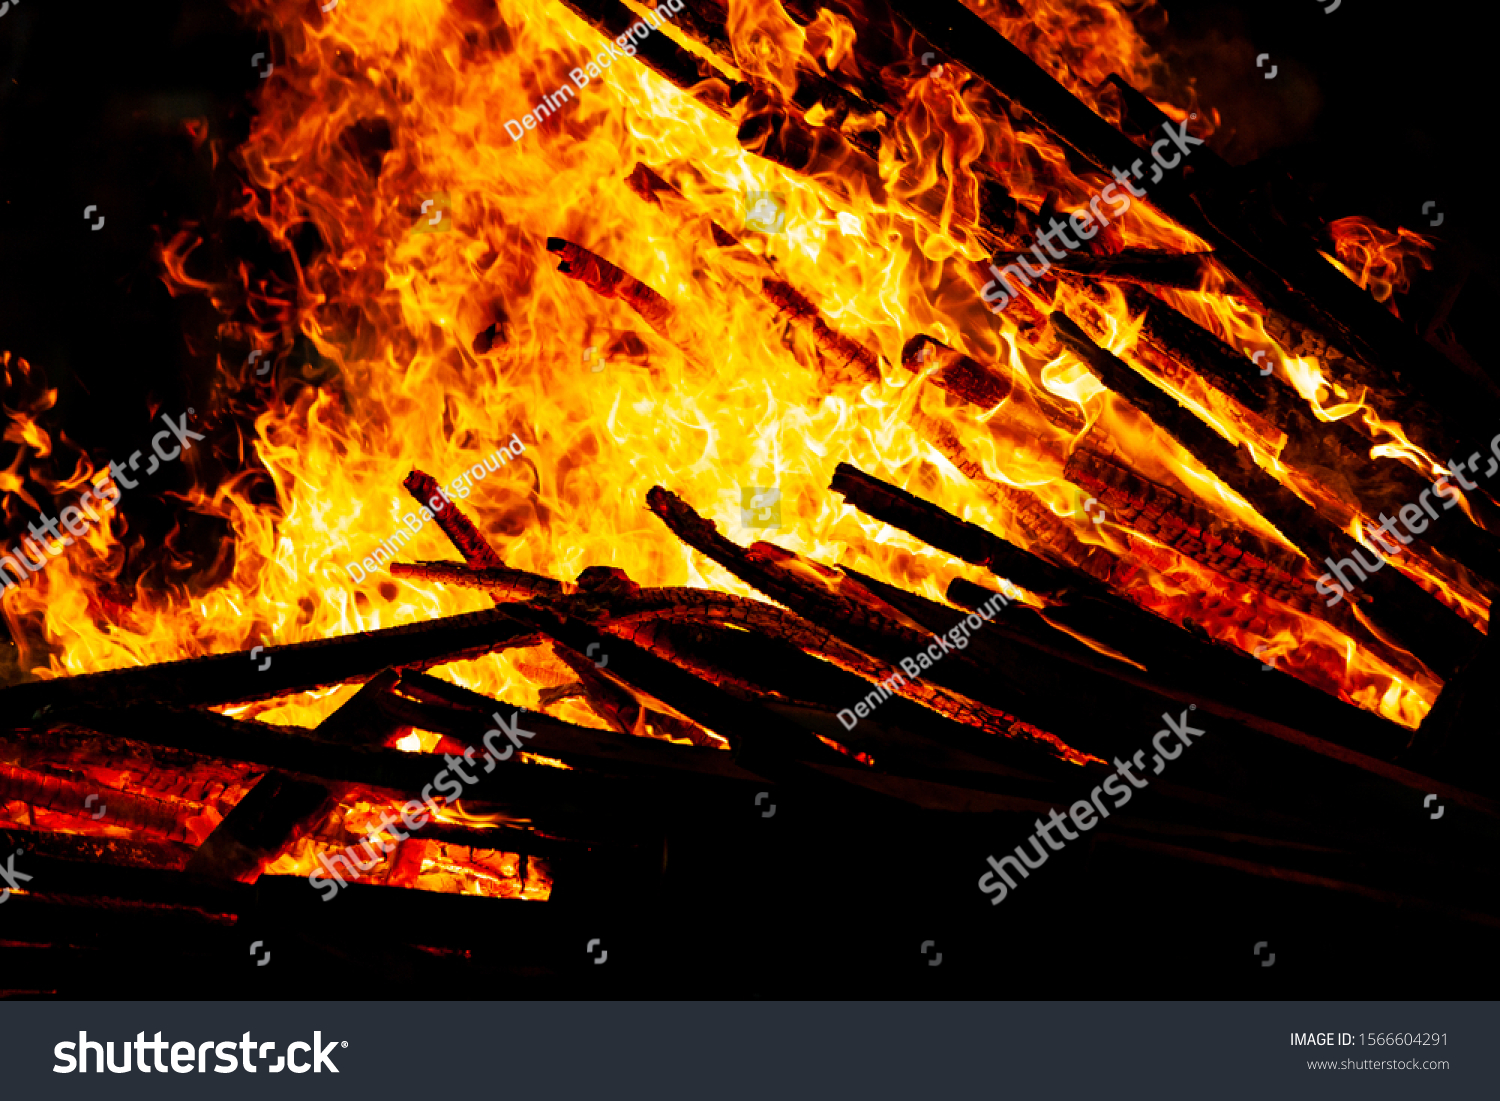 Bonfire that burns on a dark background, wood burning flame. #1566604291